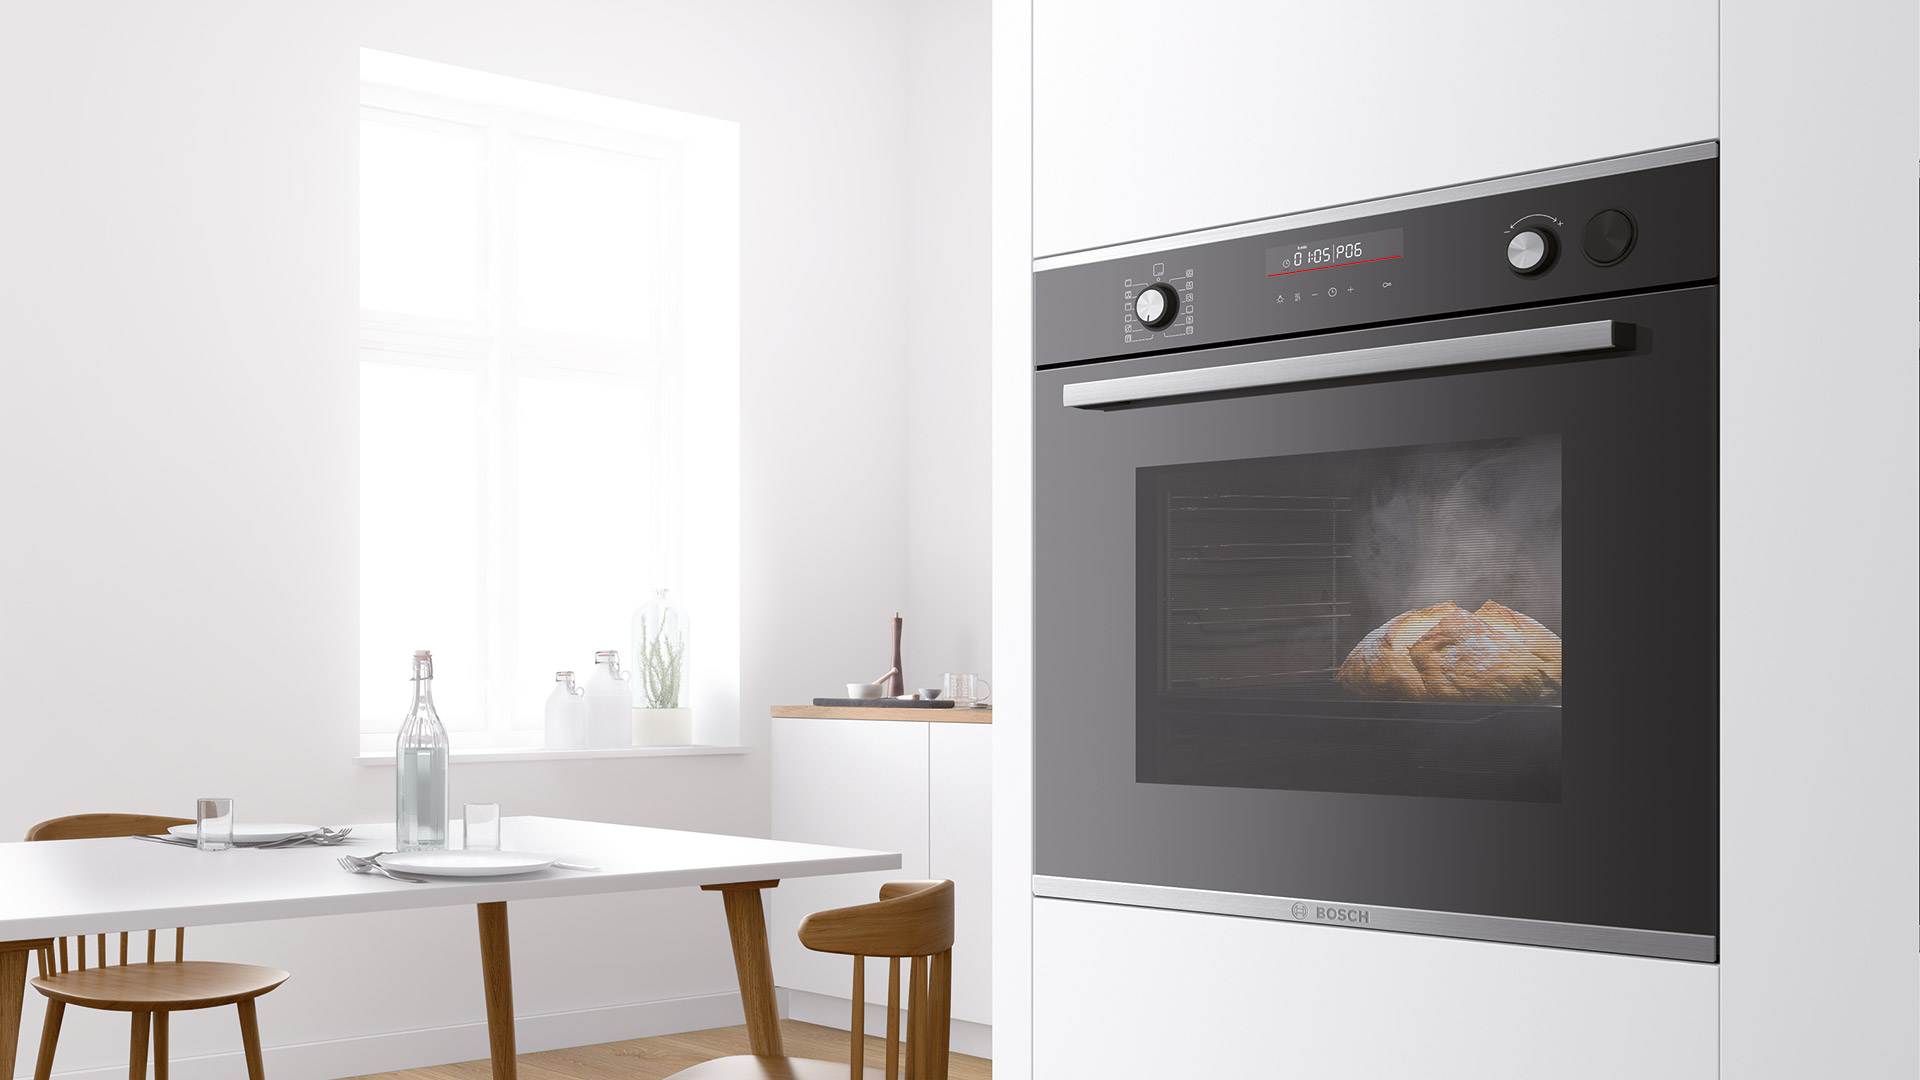 A secret ingredient for your recipes? The Bosch Series 6 ovens with steam impulses - Cucine LUBE